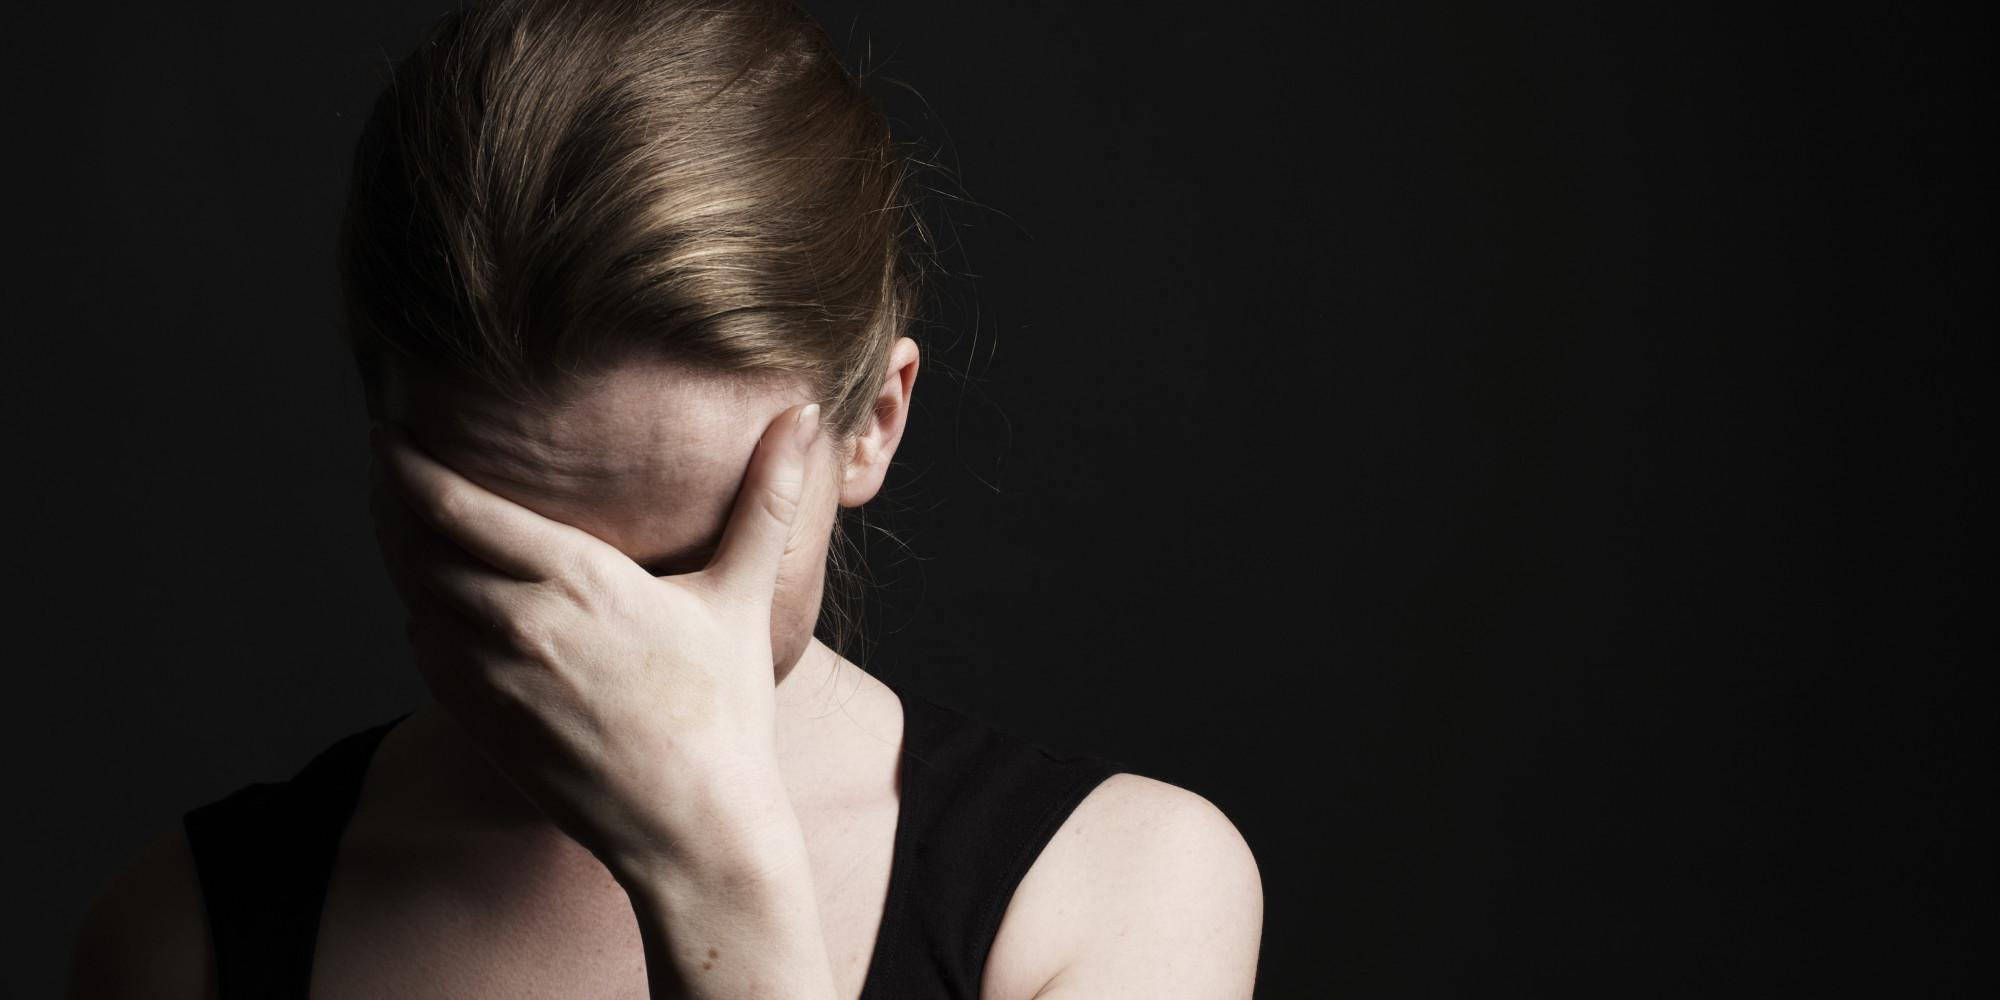 the negative effects of sexual trauma on survivors